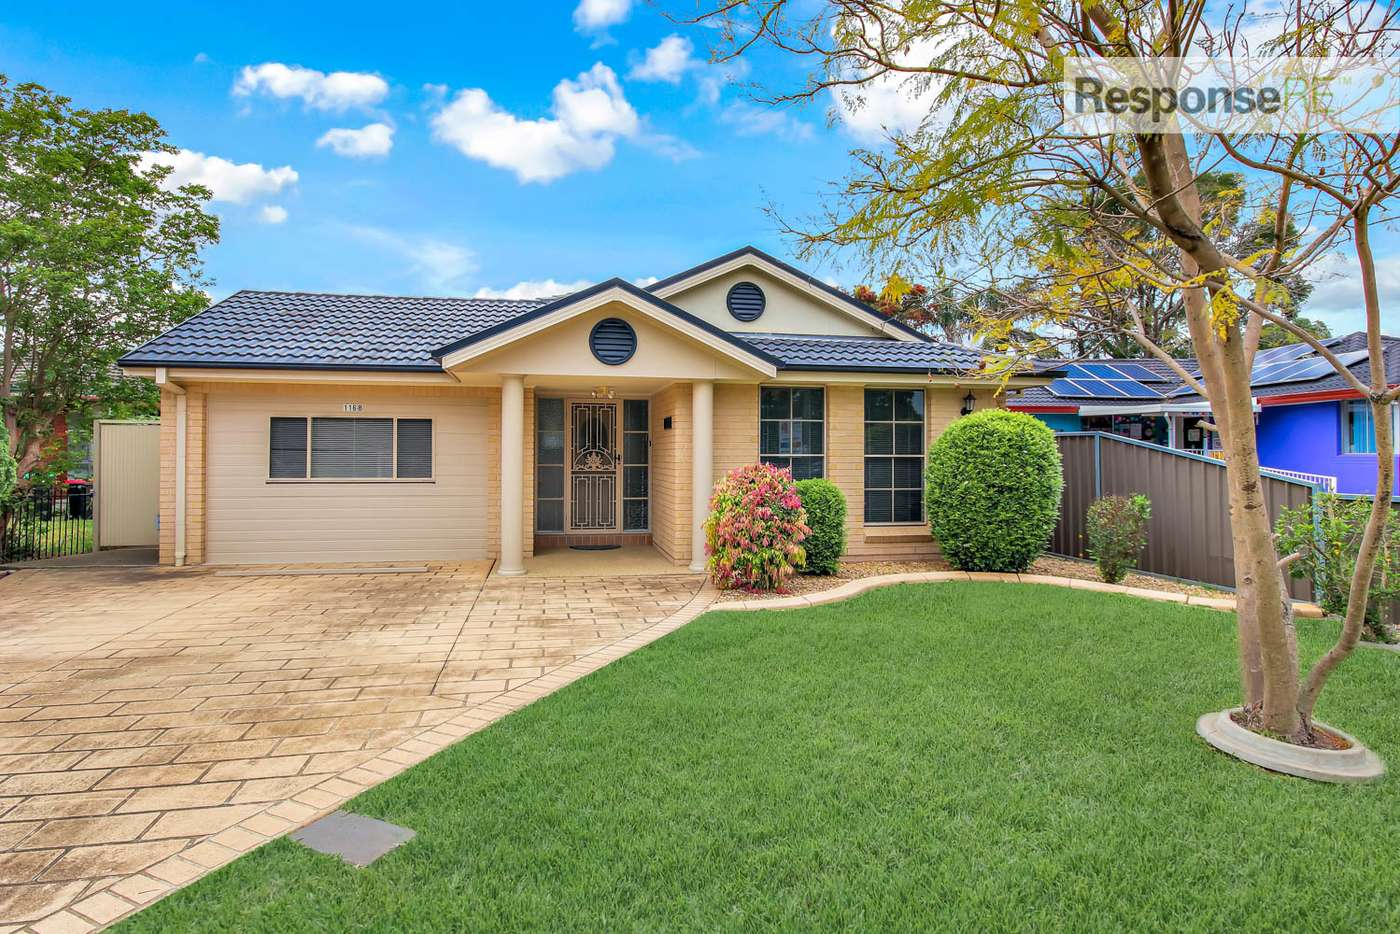 Main view of Homely house listing, 116 Woodriff Street, Penrith NSW 2750